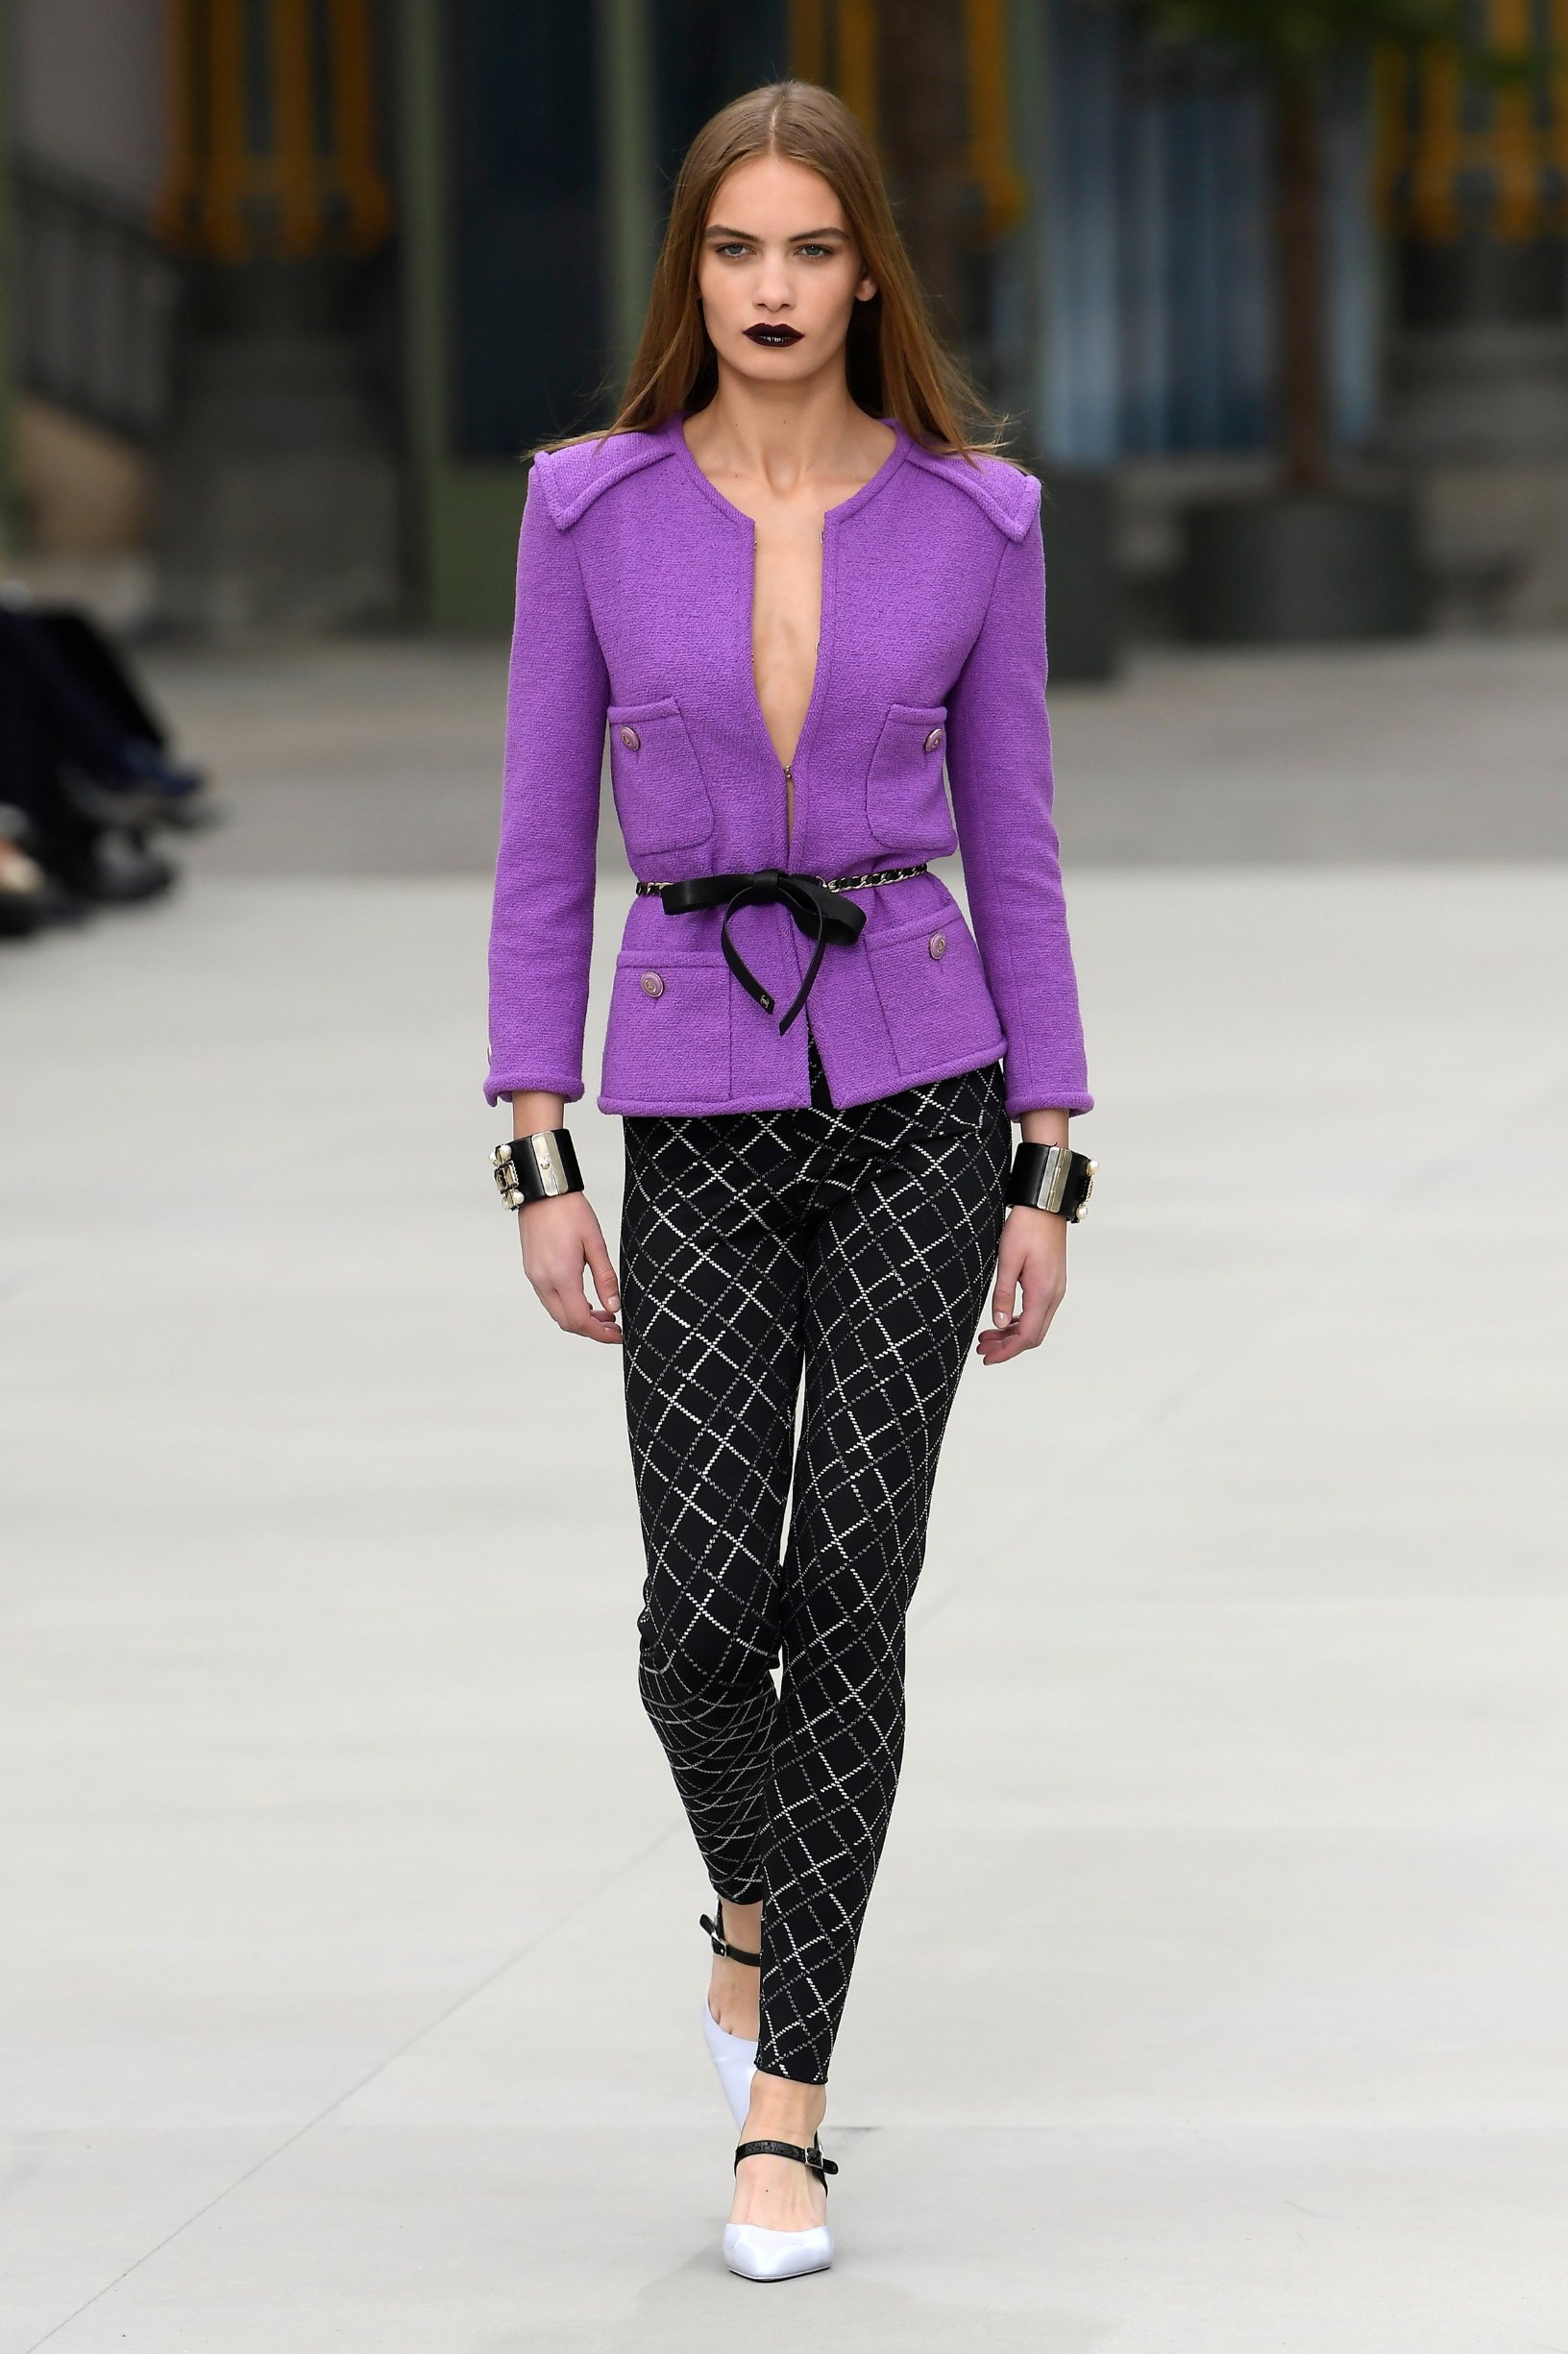 Model on the catwalk Chanel Cruise 2020 show, Runway, Paris, France - 03 May 2019, Image: 430641599, License: Rights-managed, Restrictions: , Model Release: no, Credit line: Profimedia, TEMP Rex Features